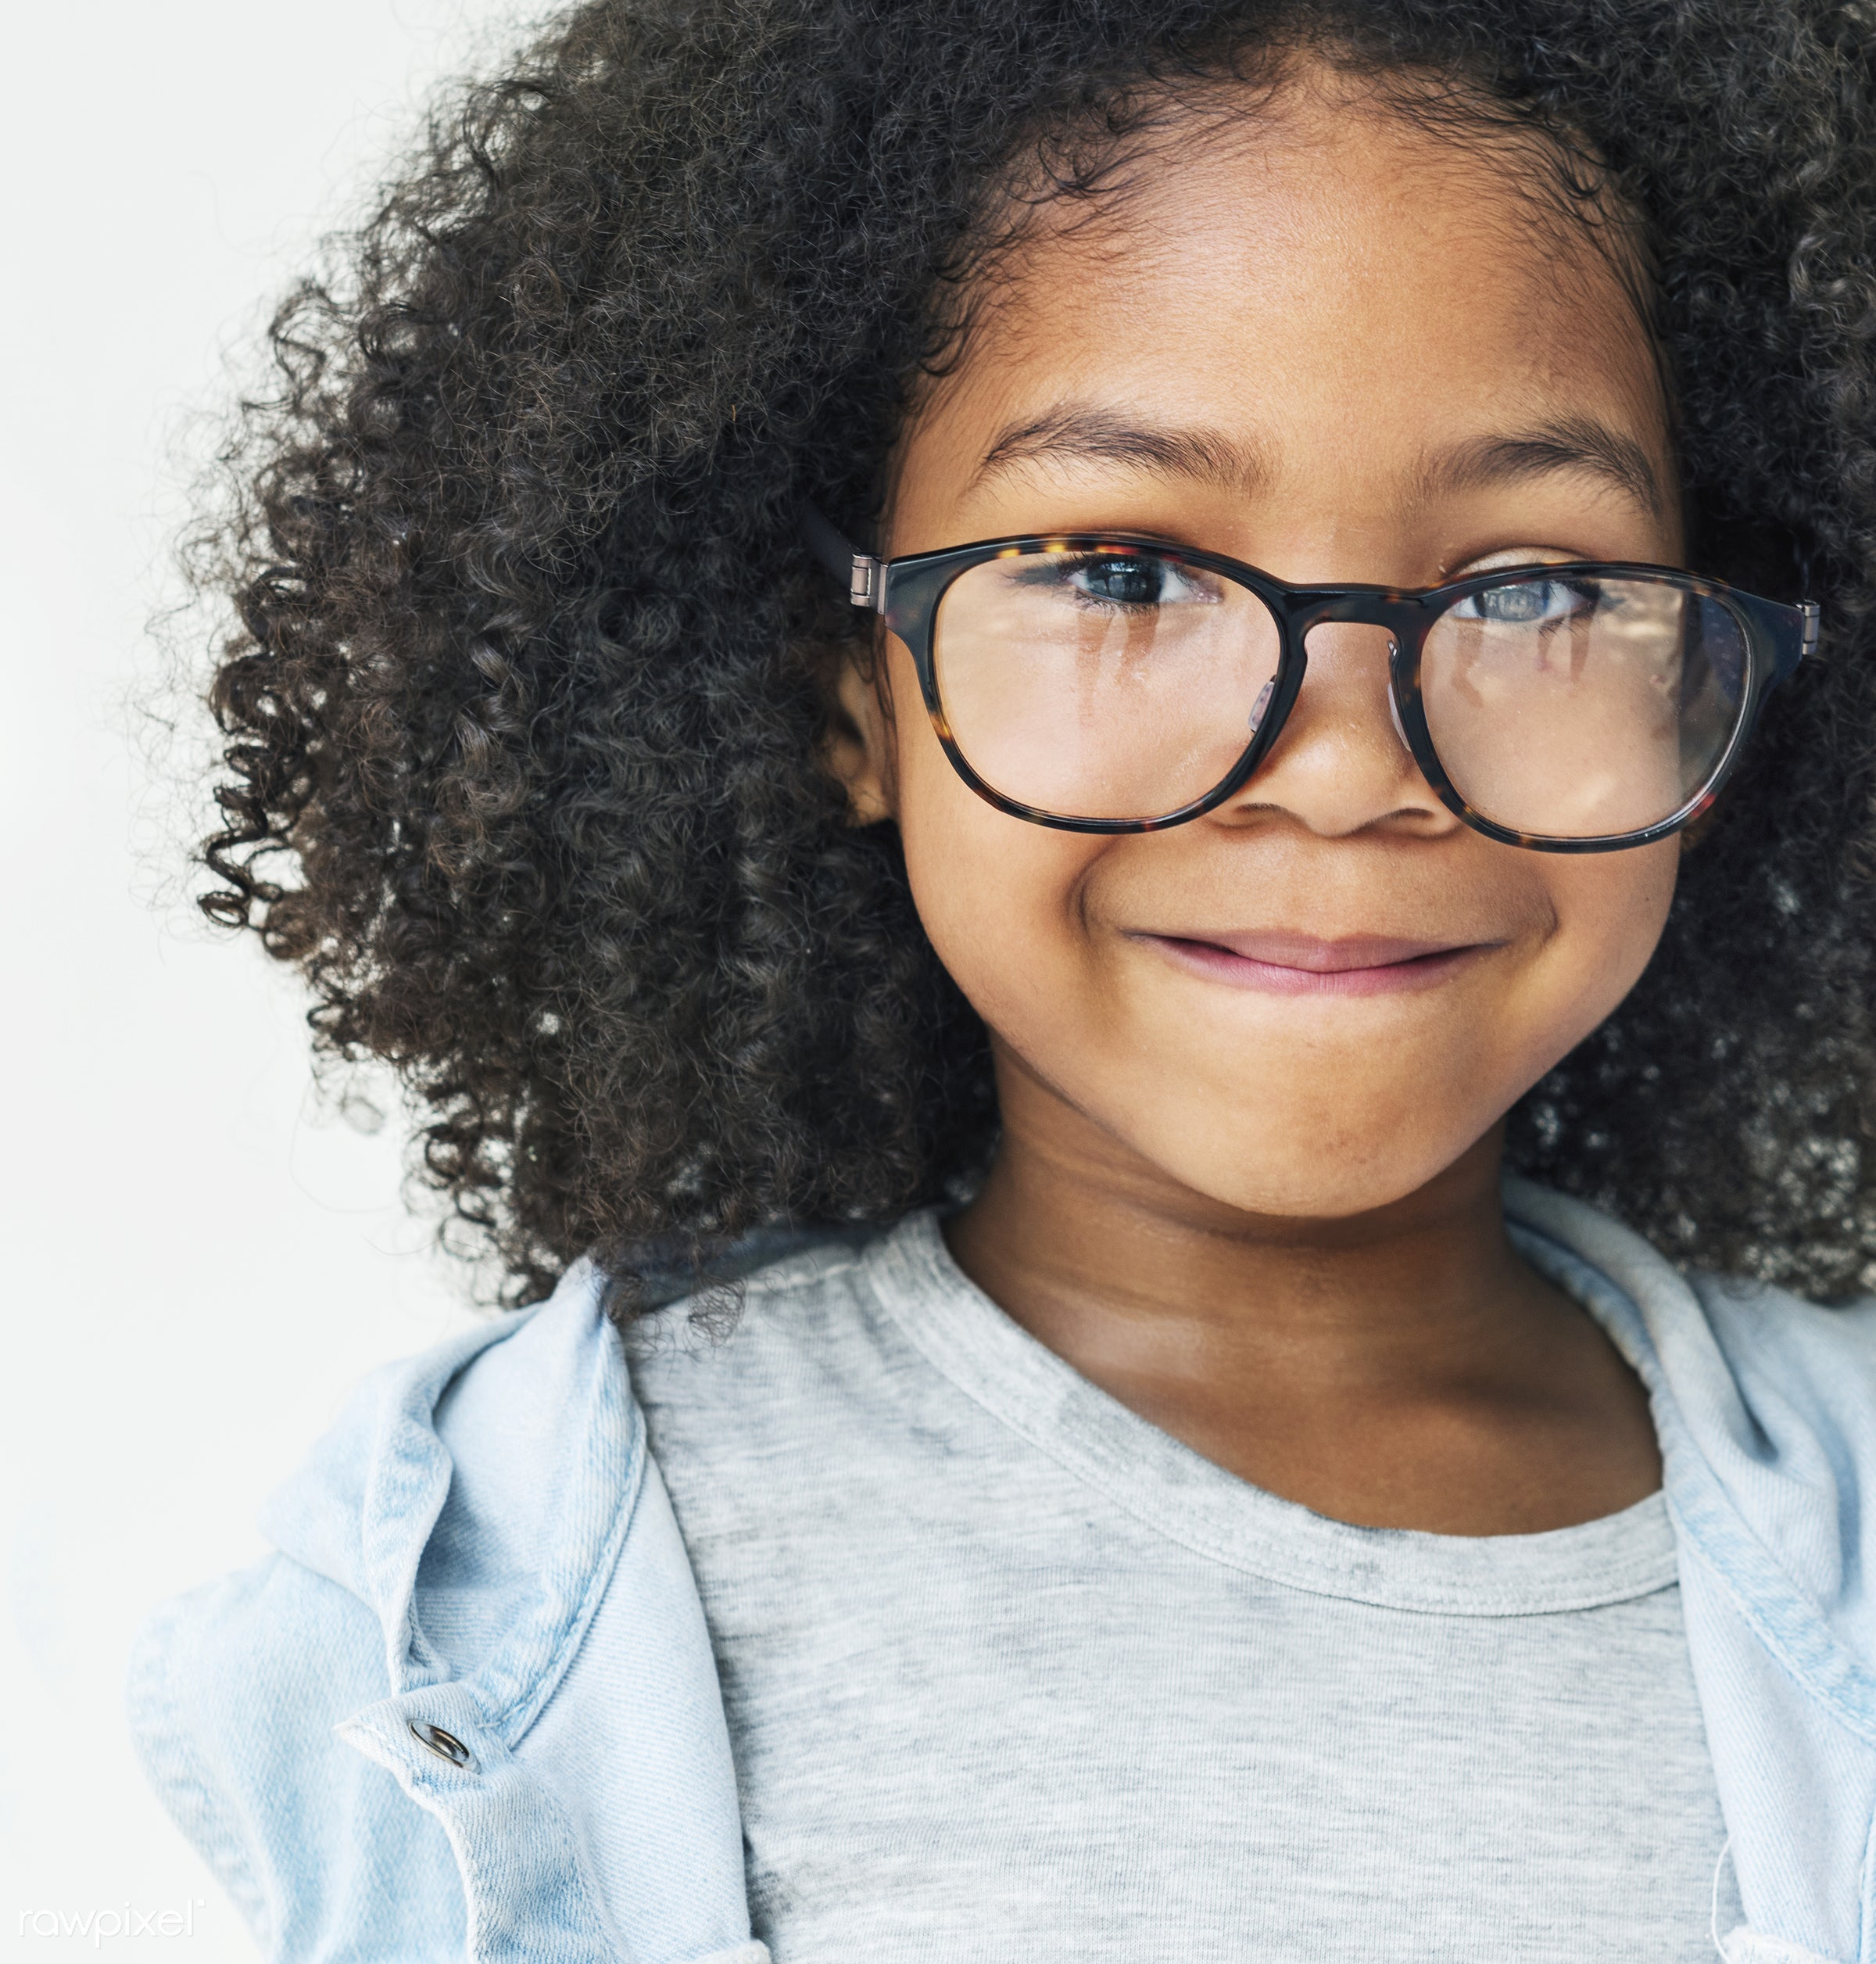 Cute girl with glasses - activities, adorable, african descent, casual, cheerful, child, childhood, childhood friends,...